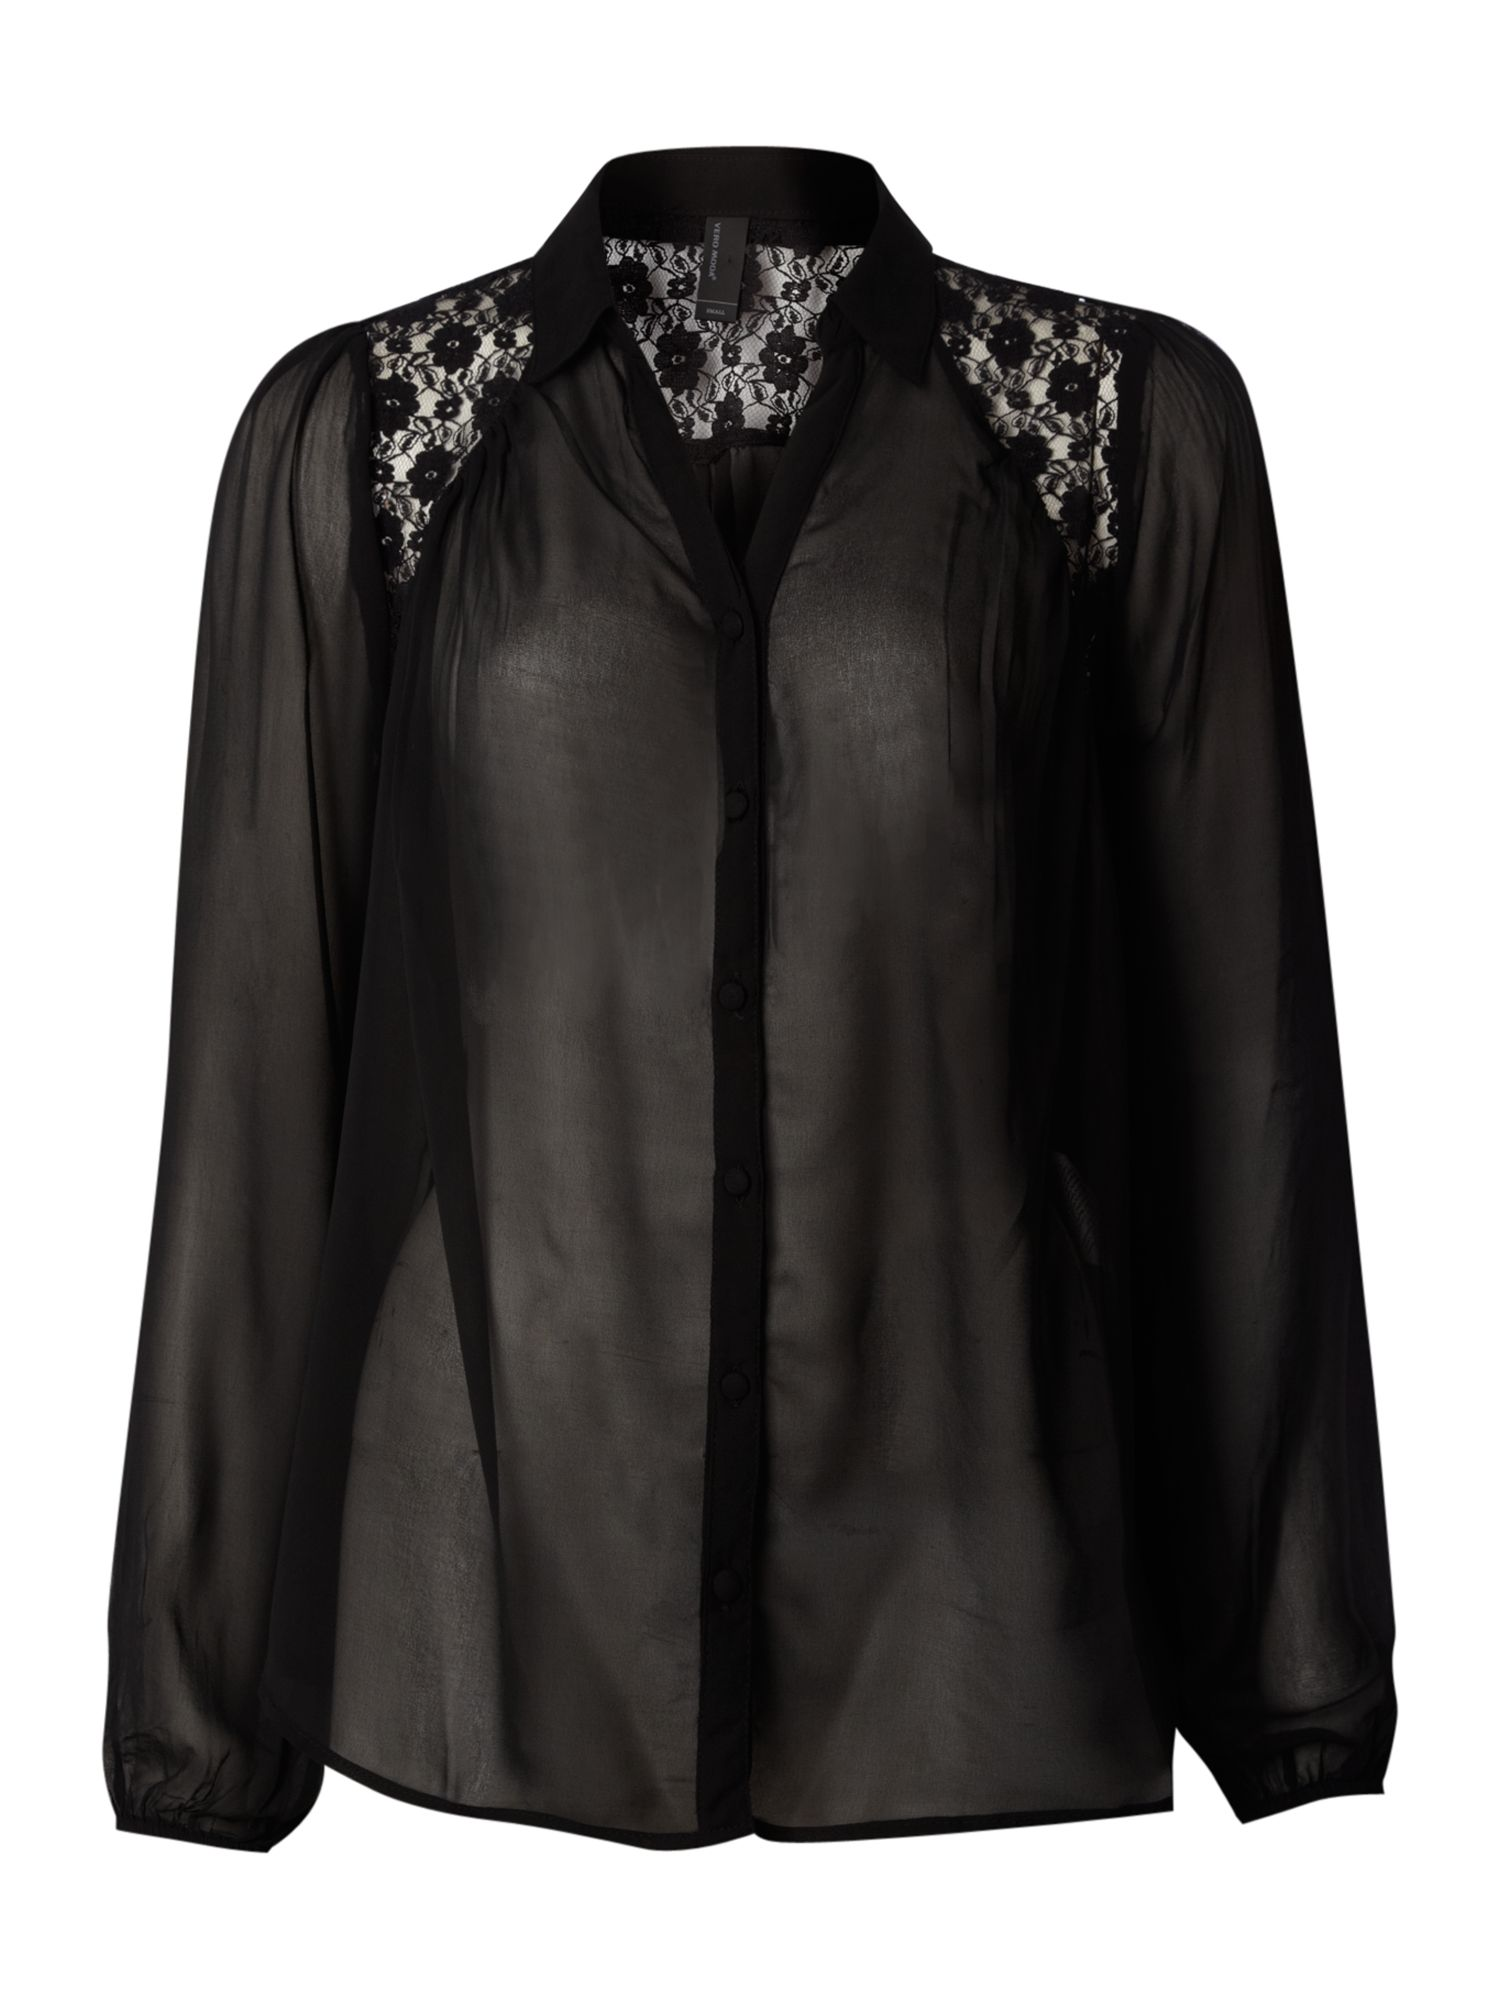 Vero Moda Womens Vero Moda Lace blouse, Black 155649240 product image